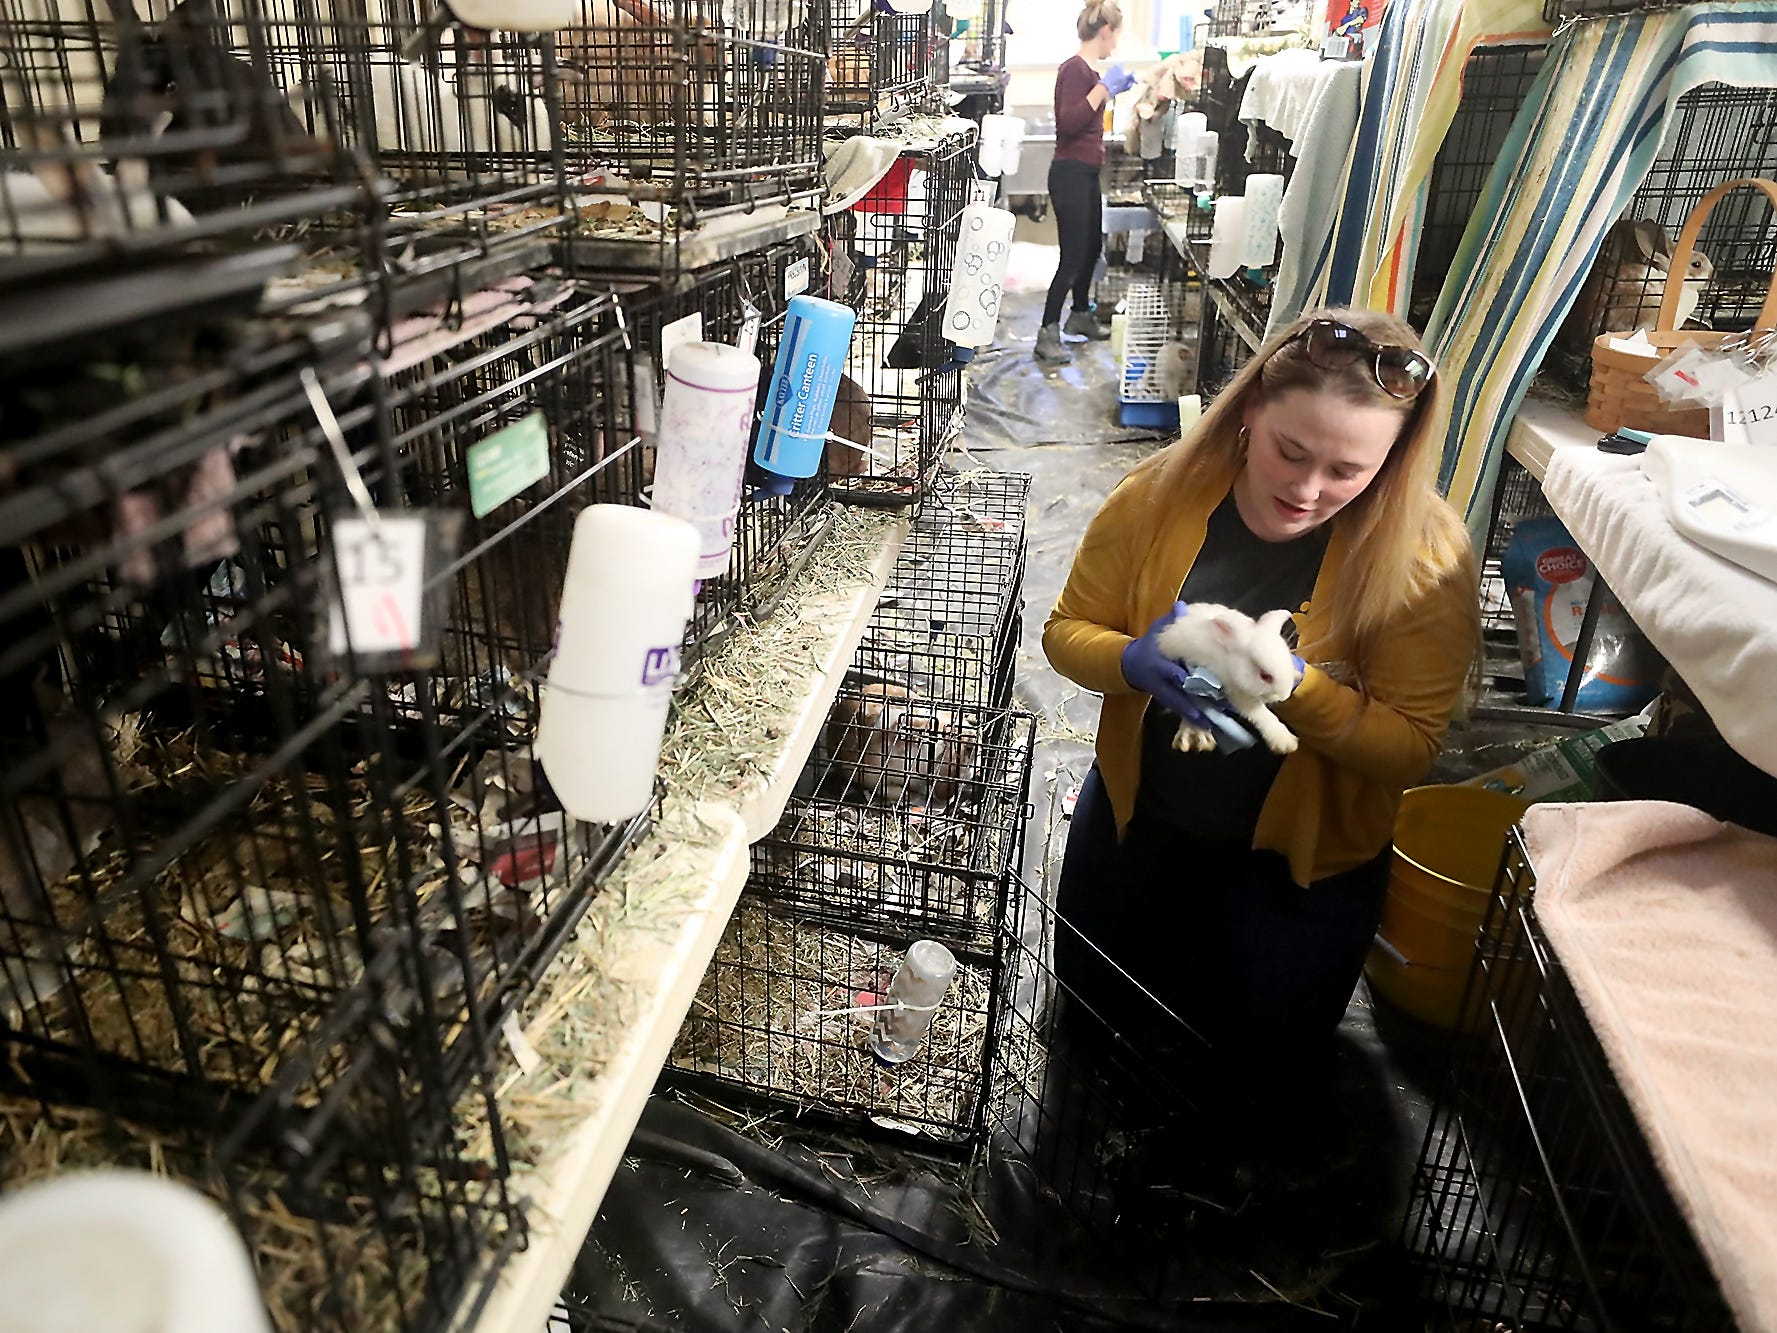 Sarah Moody-Cook, Director of Animal Welfare at the Kitsap Human Society, removes one of the rabbits from their cage as she and fellow shelter personnel process, give health checks to and ultimately work to get around 300 rabbits ready for foster homes and adoption on Friday, March 1, 2019.